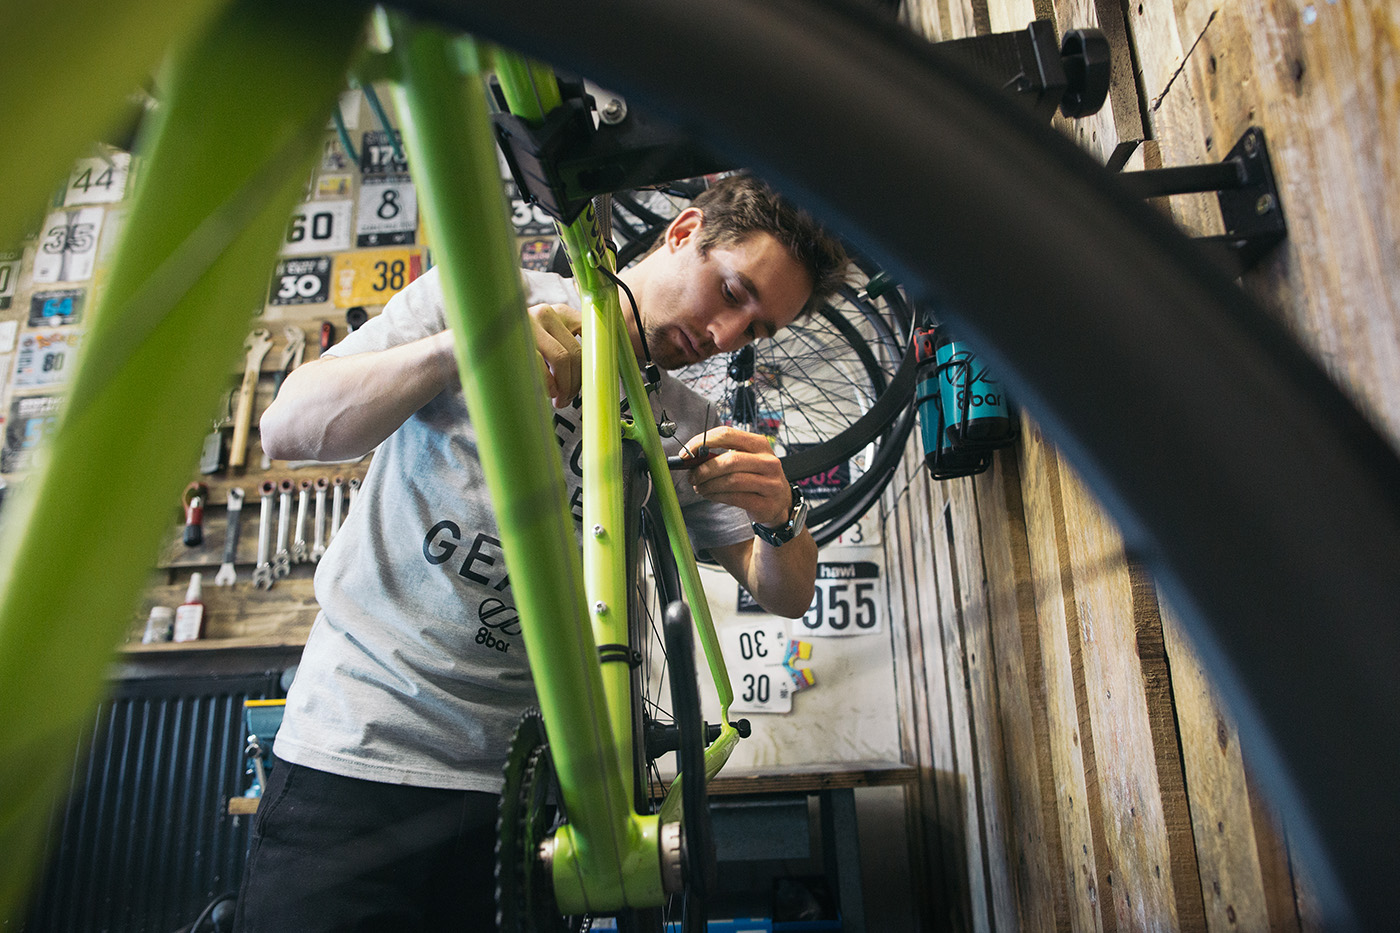 8bar showroom berlin 1012 s - job offer - Shop Manager / bike mechanic - Berlin